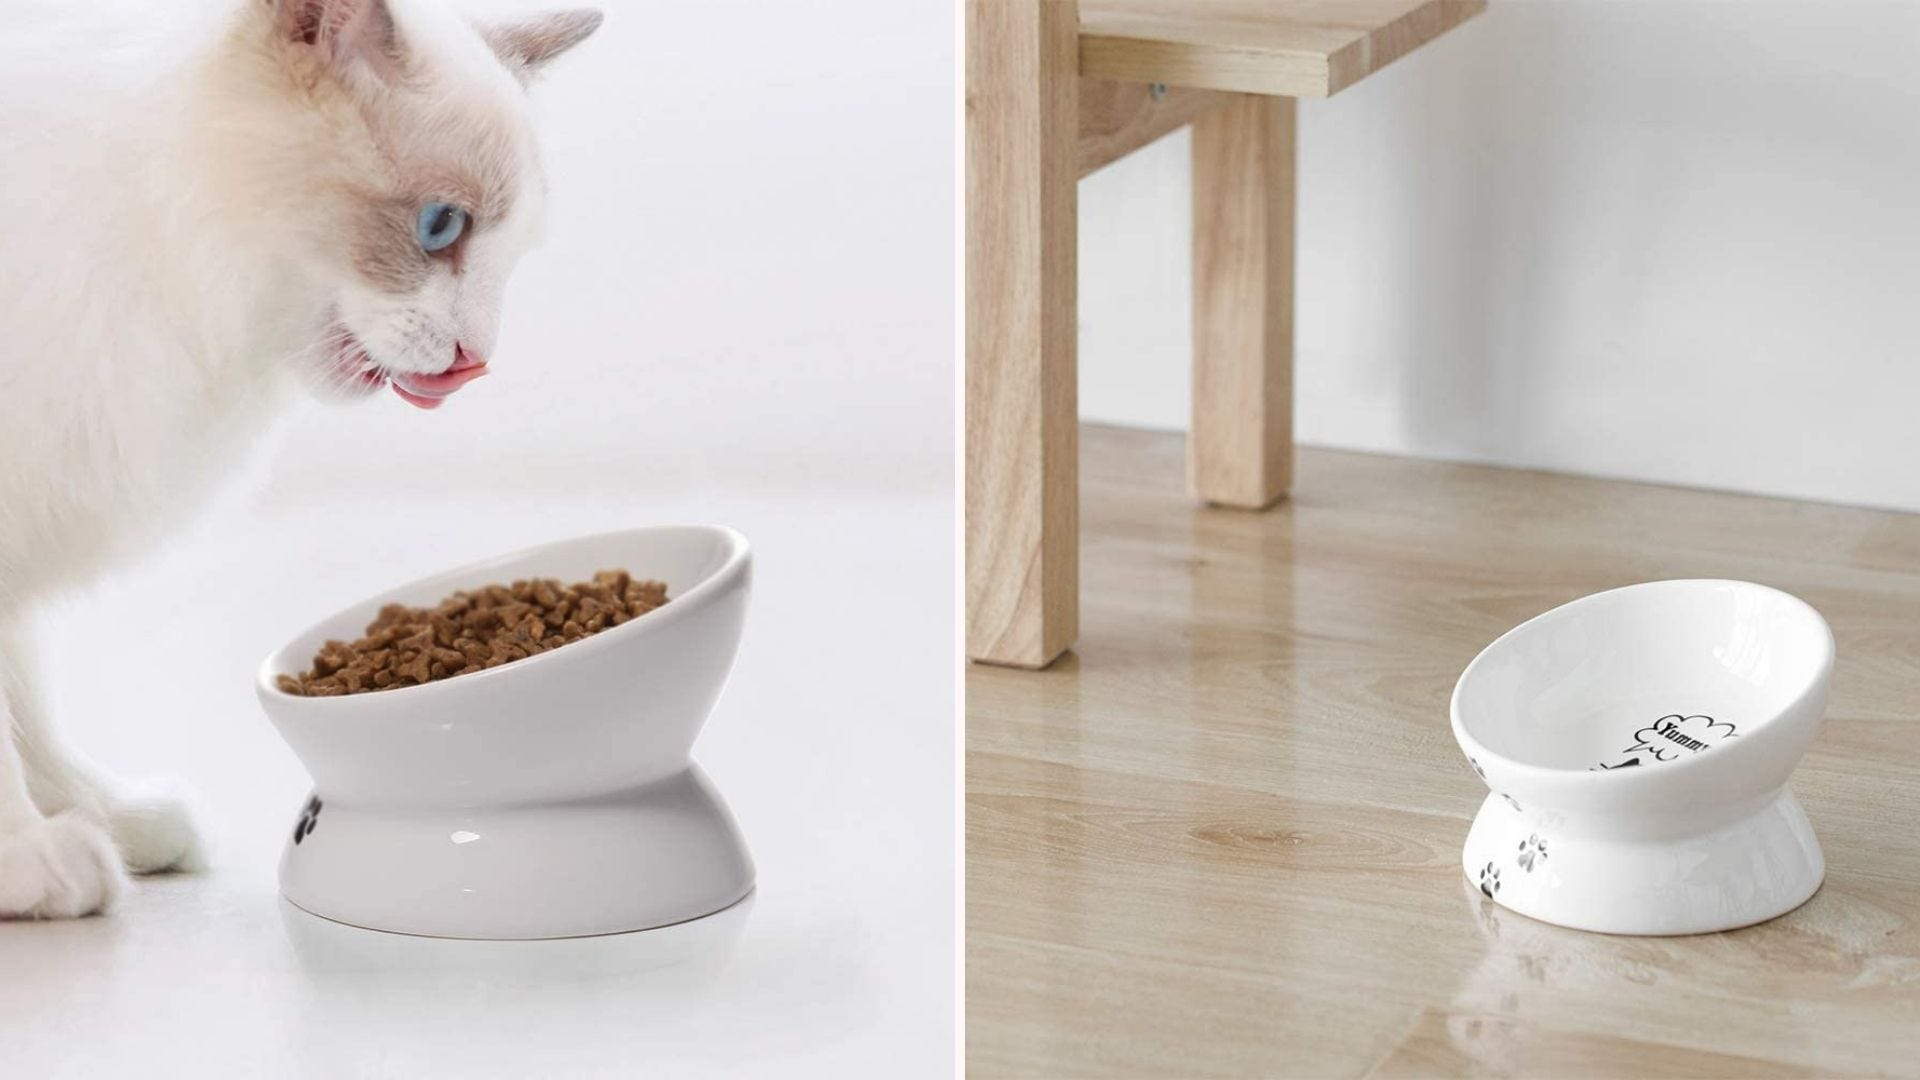 A cat eating from the Y YHY tilted food bowl, and an empty one on a hardwood floor.